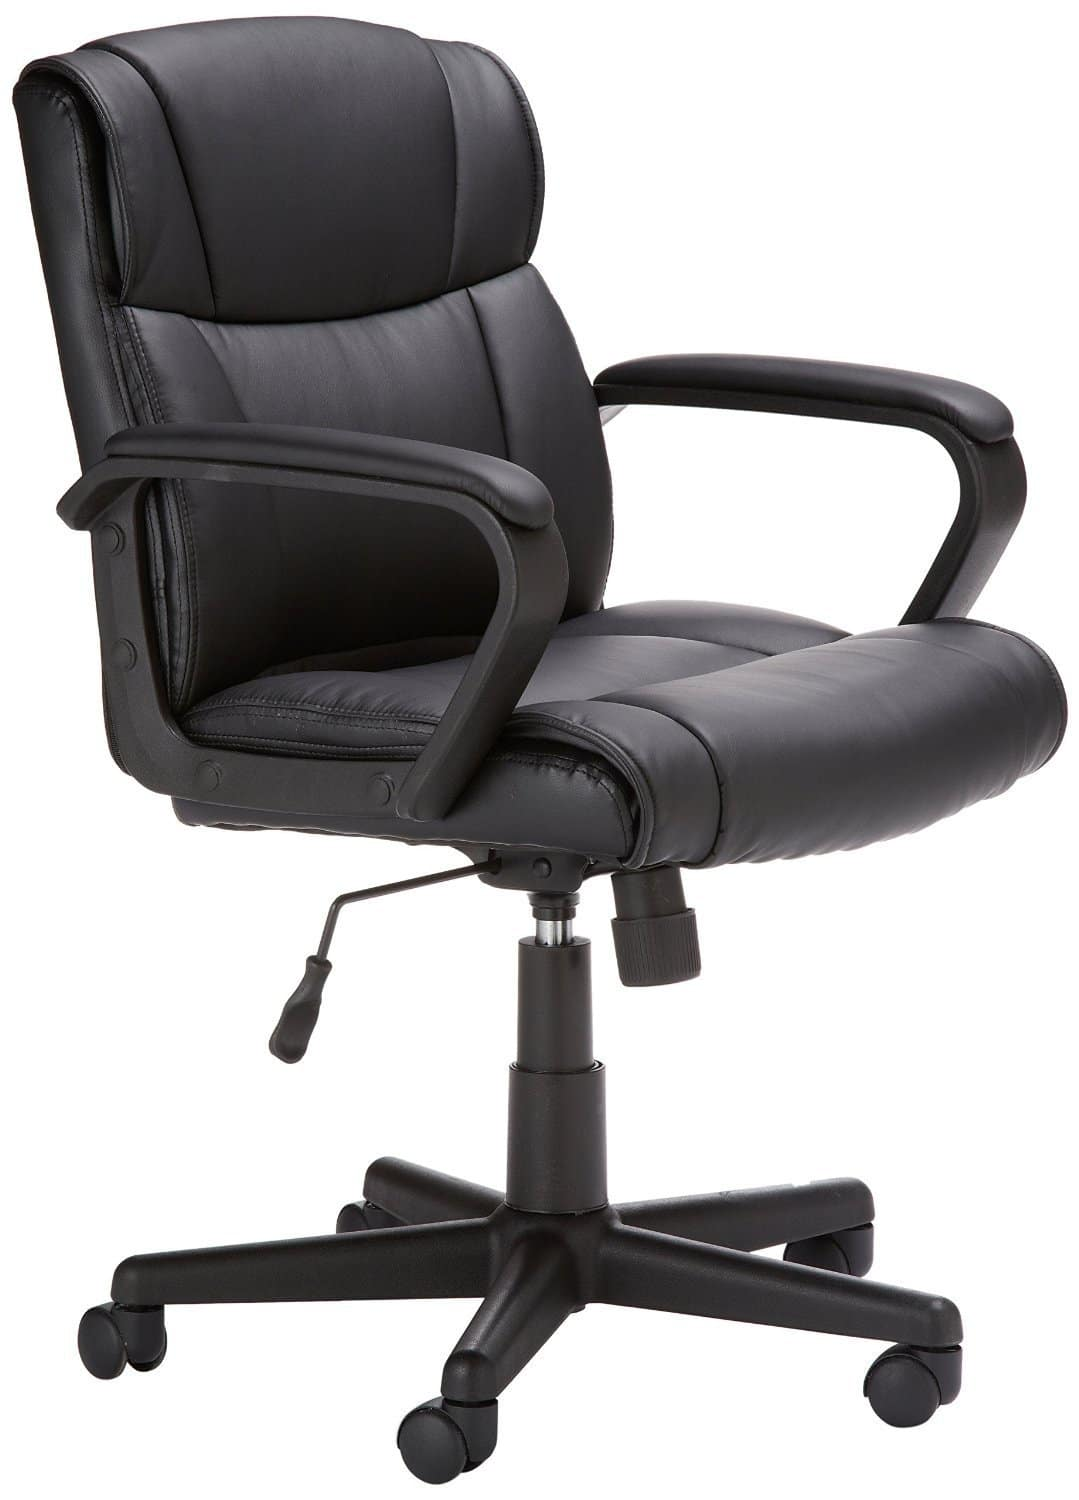 amazon basics midback office chair ergonomic office chairs